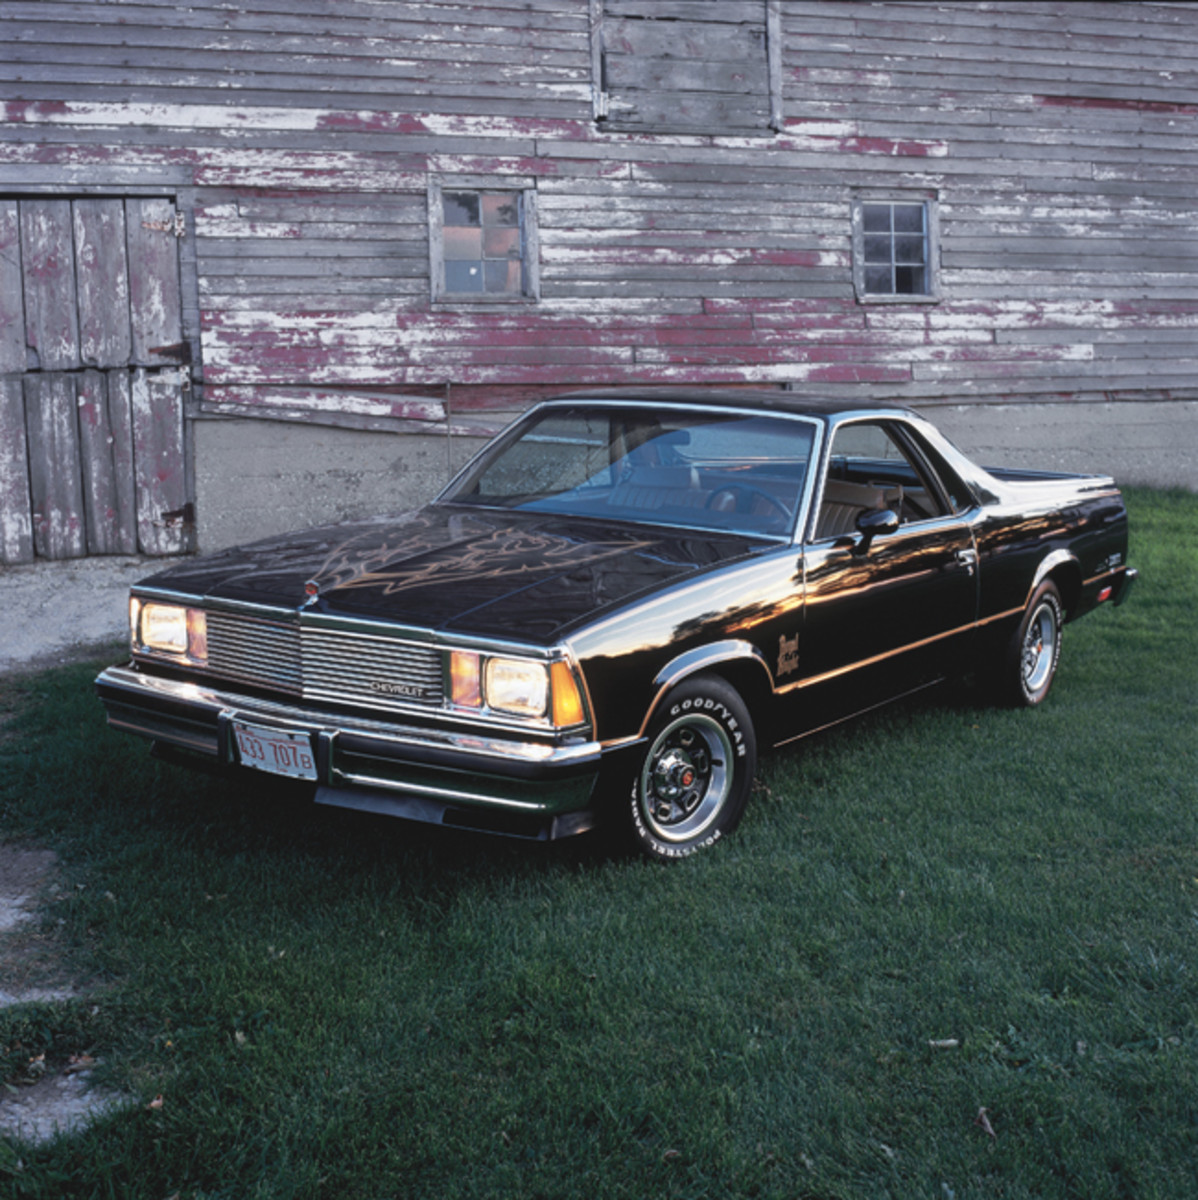 Striking paint, striping and decals made the 1981 El Camino Royal Knight hard to miss.